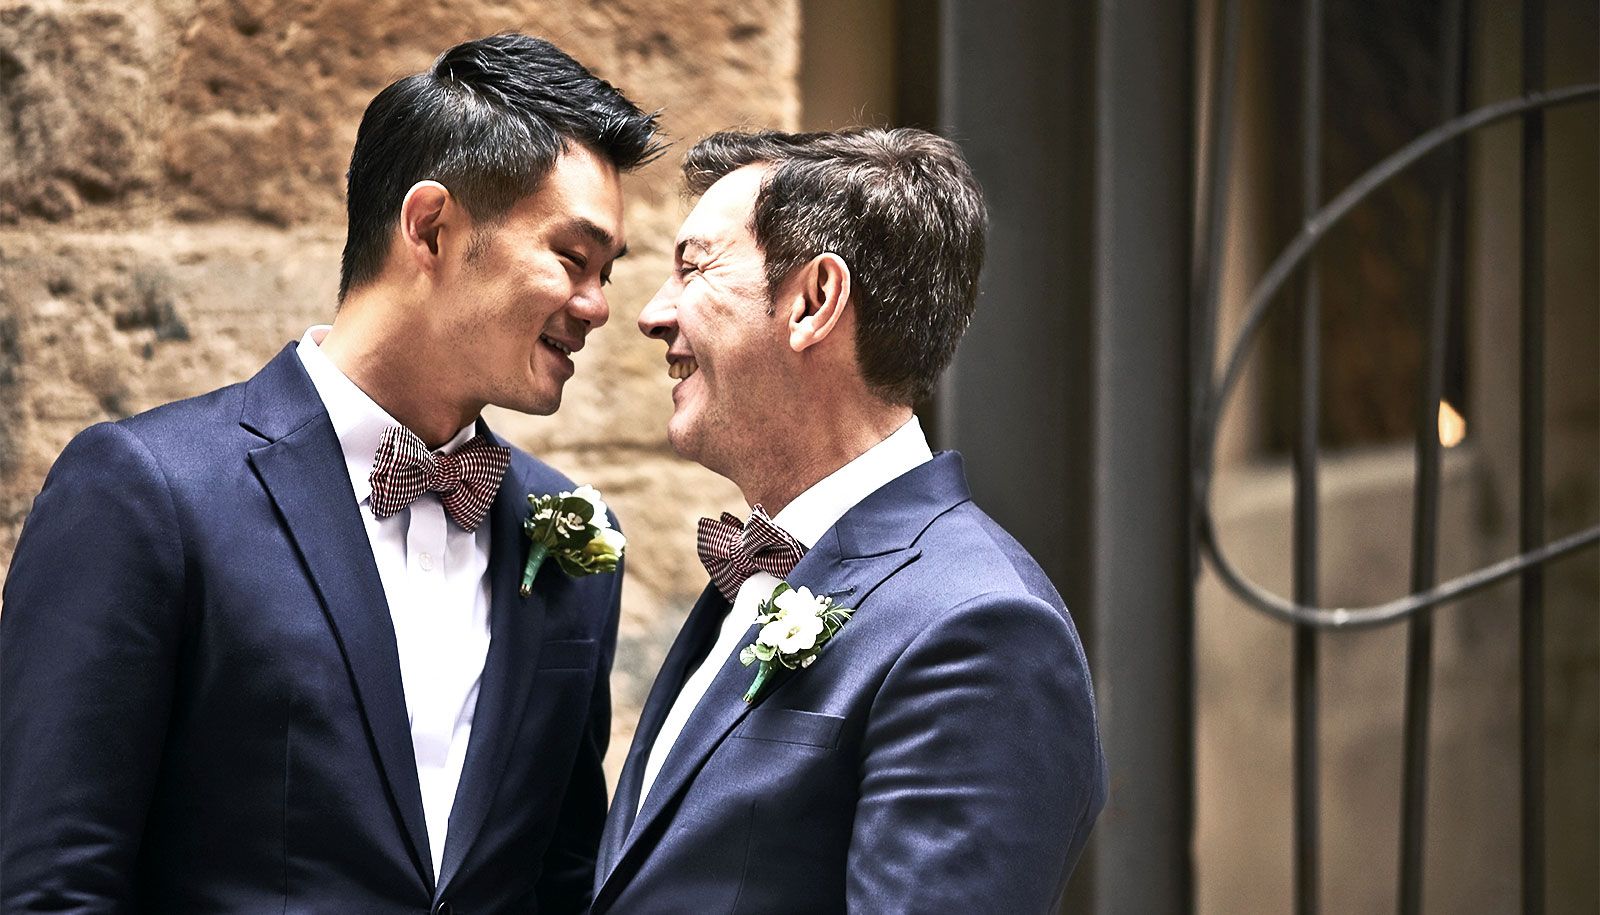 U.S. same-sex couples get marriage licenses without discrimination